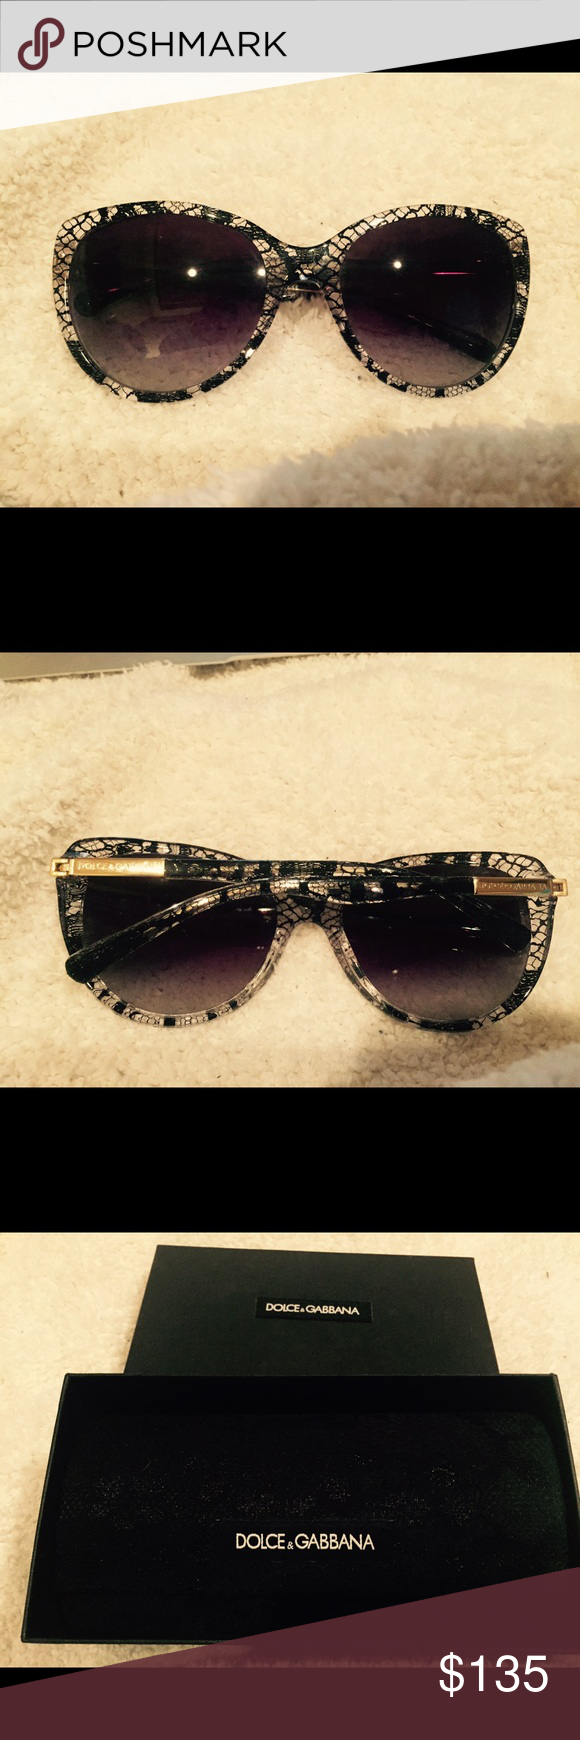 Dolce + Gabbana sunglasses in pristine condition Dolce and Cabanna sunglasses in pristine condition in a clear and black very cool looking  plastic frame with original box and sunglass holder Dolce & Gabbana Accessories Sunglasses